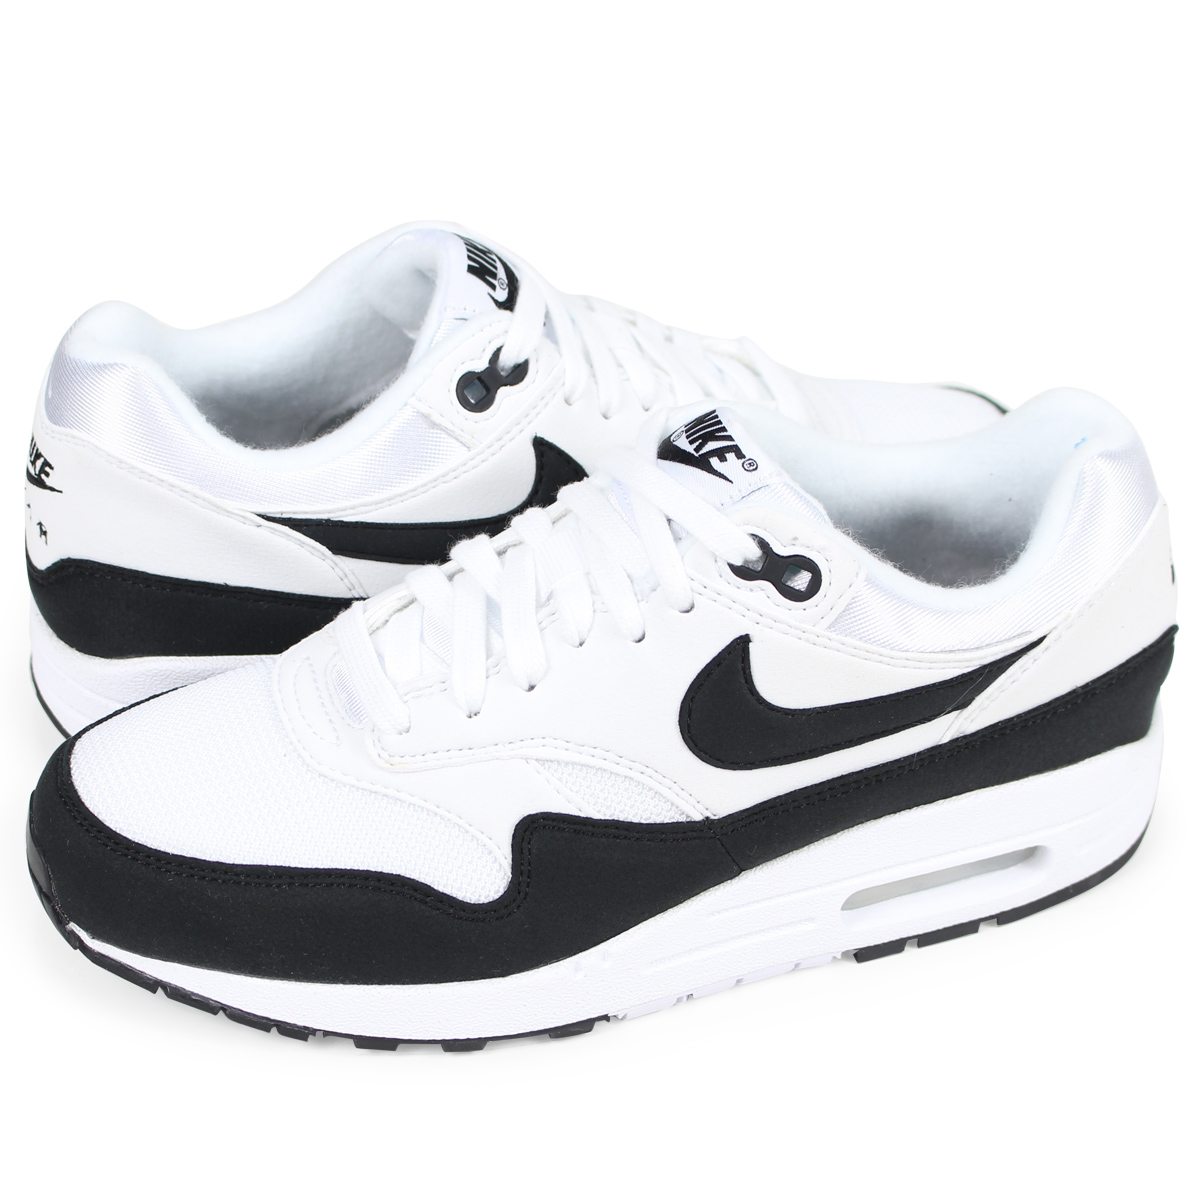 NIKE WMNS AIR MAX 1 Kie Ney AMAX 1 Lady's sneakers 319,986 109 white [load planned Shinnyu load in reservation product 330 containing]